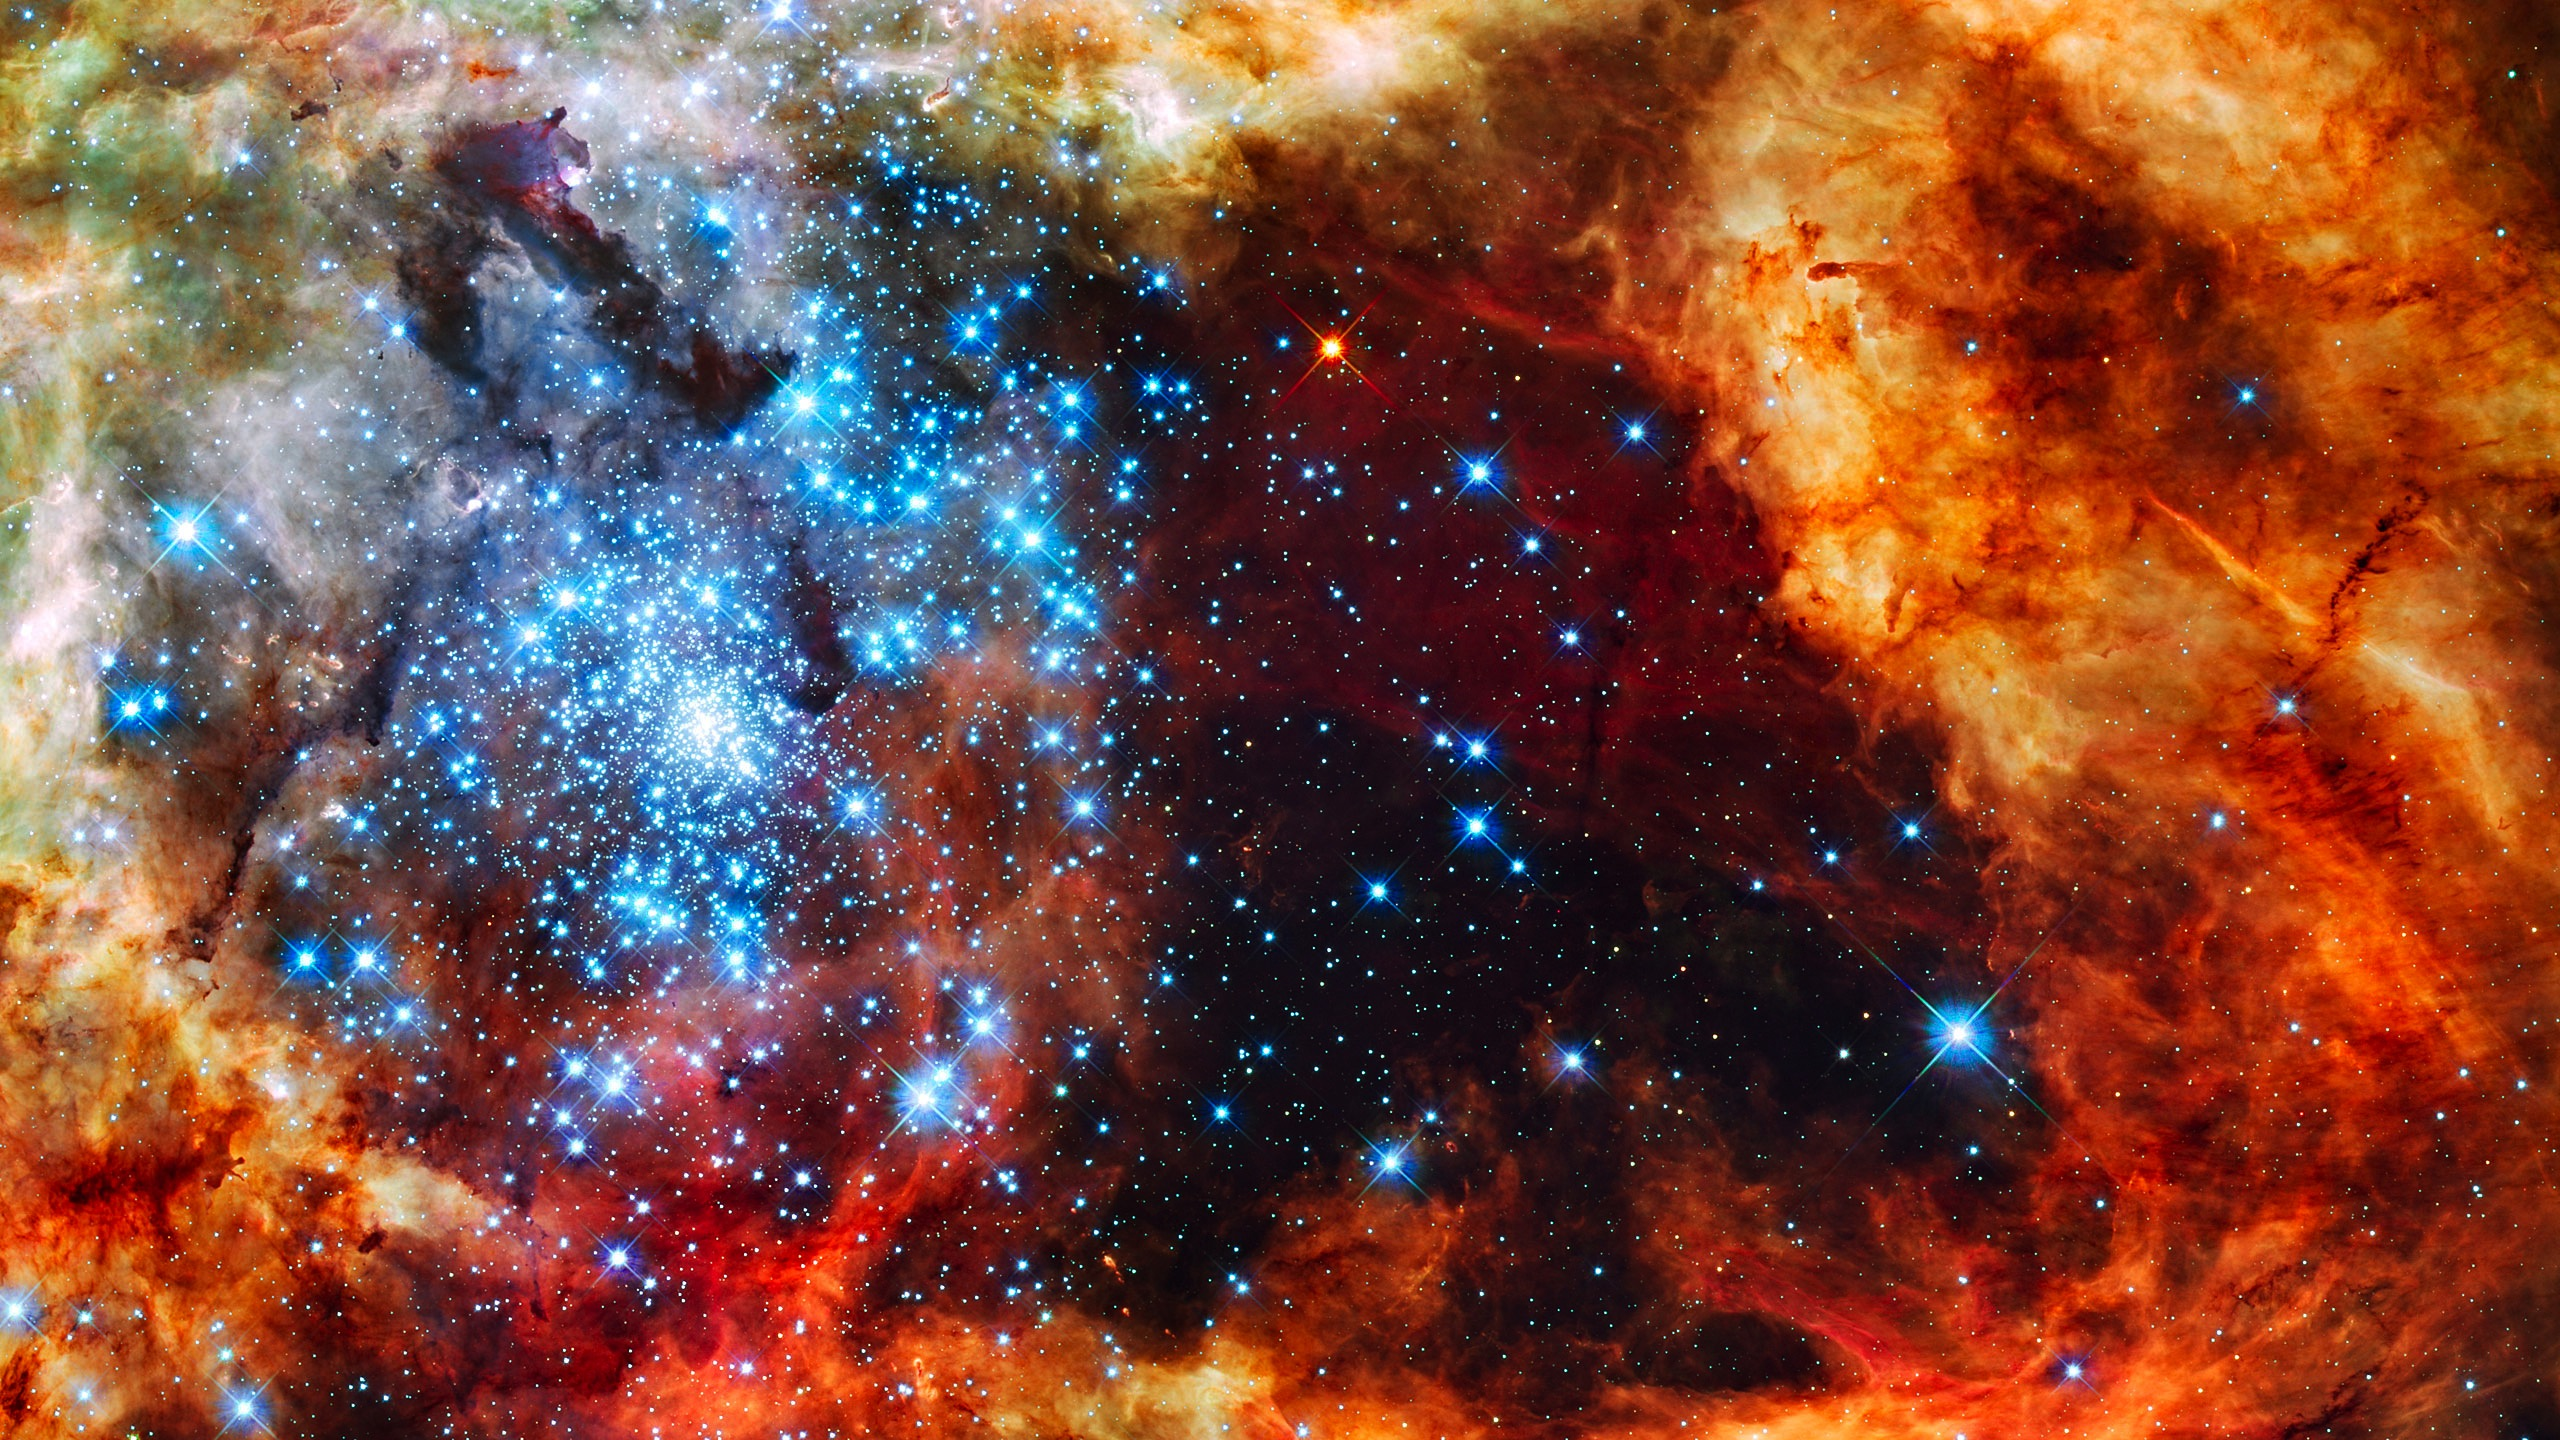 2560x1440 - Star Cluster Wallpapers 32